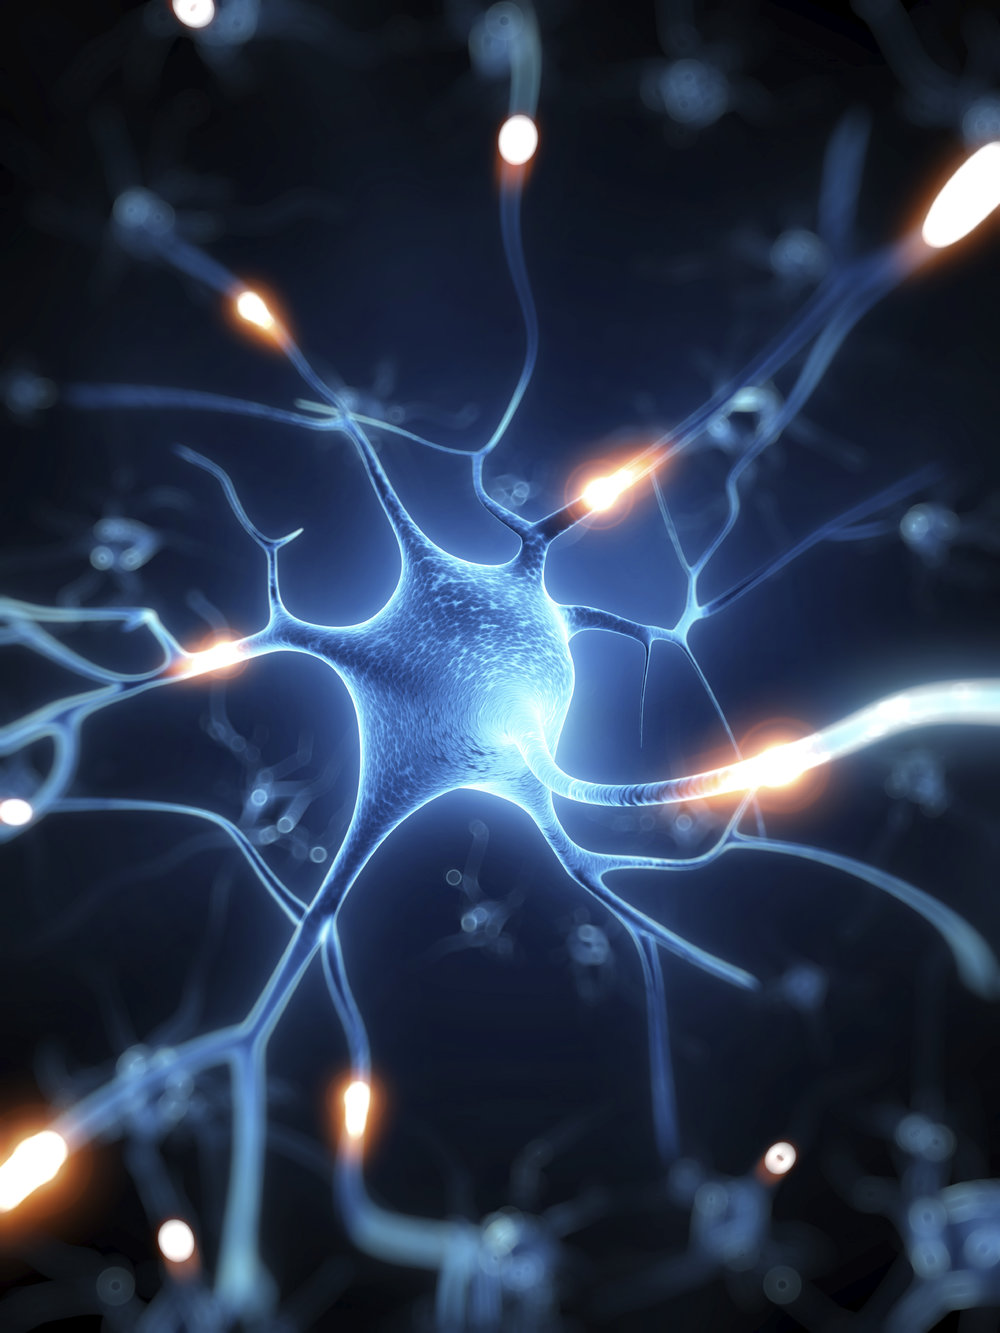 The nervous system drives everything, so when does it get its rest day?